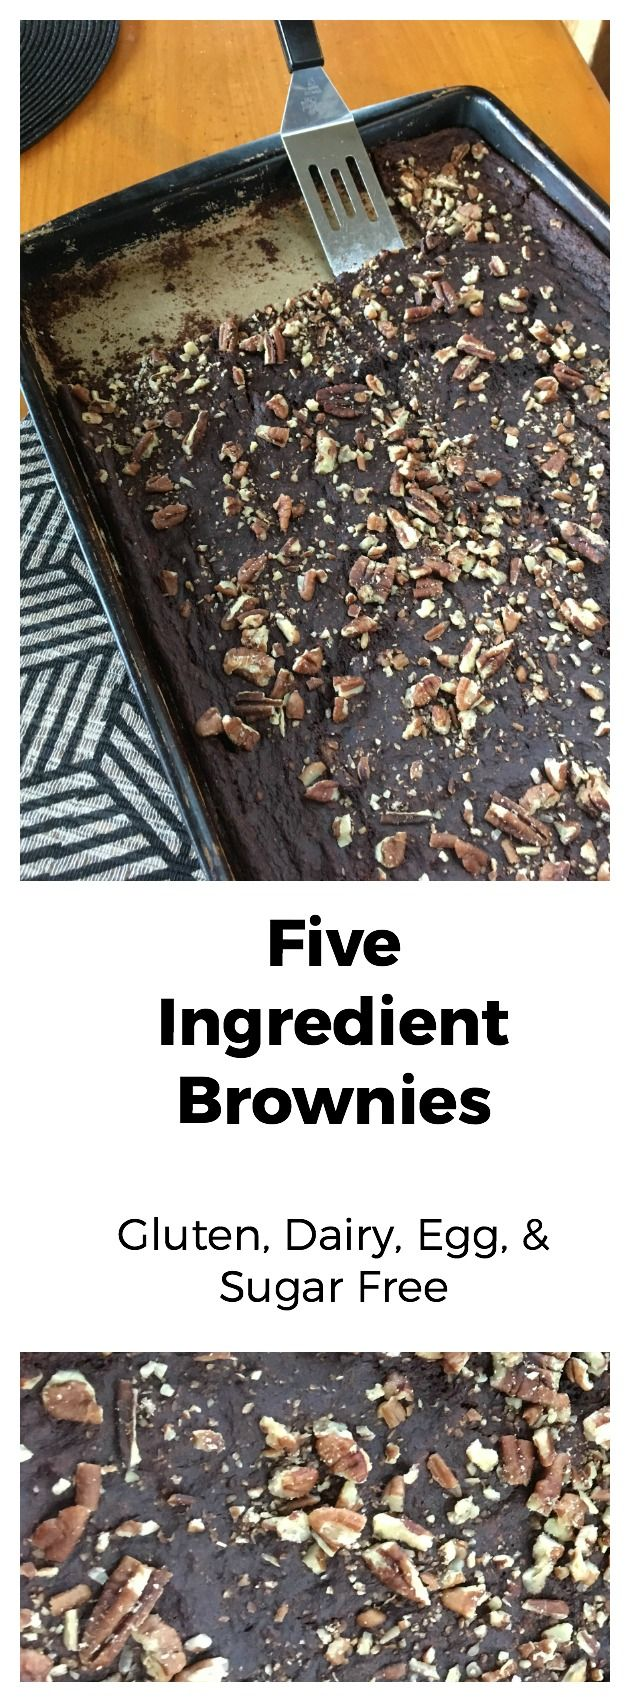 These are a favorite of the family. I even get request to bring them to work, from co-workers who are accustomed to the traditional brownie. I leave 1/2 the pan plain, sprinkling the other half with crushed pecans when I share them with others. Seems like each side disappears in equal proportions. ♥ Shelly Don't forget to pin FIVE INGREDIENT BROWNIES to your favorite Pinterest board for later!